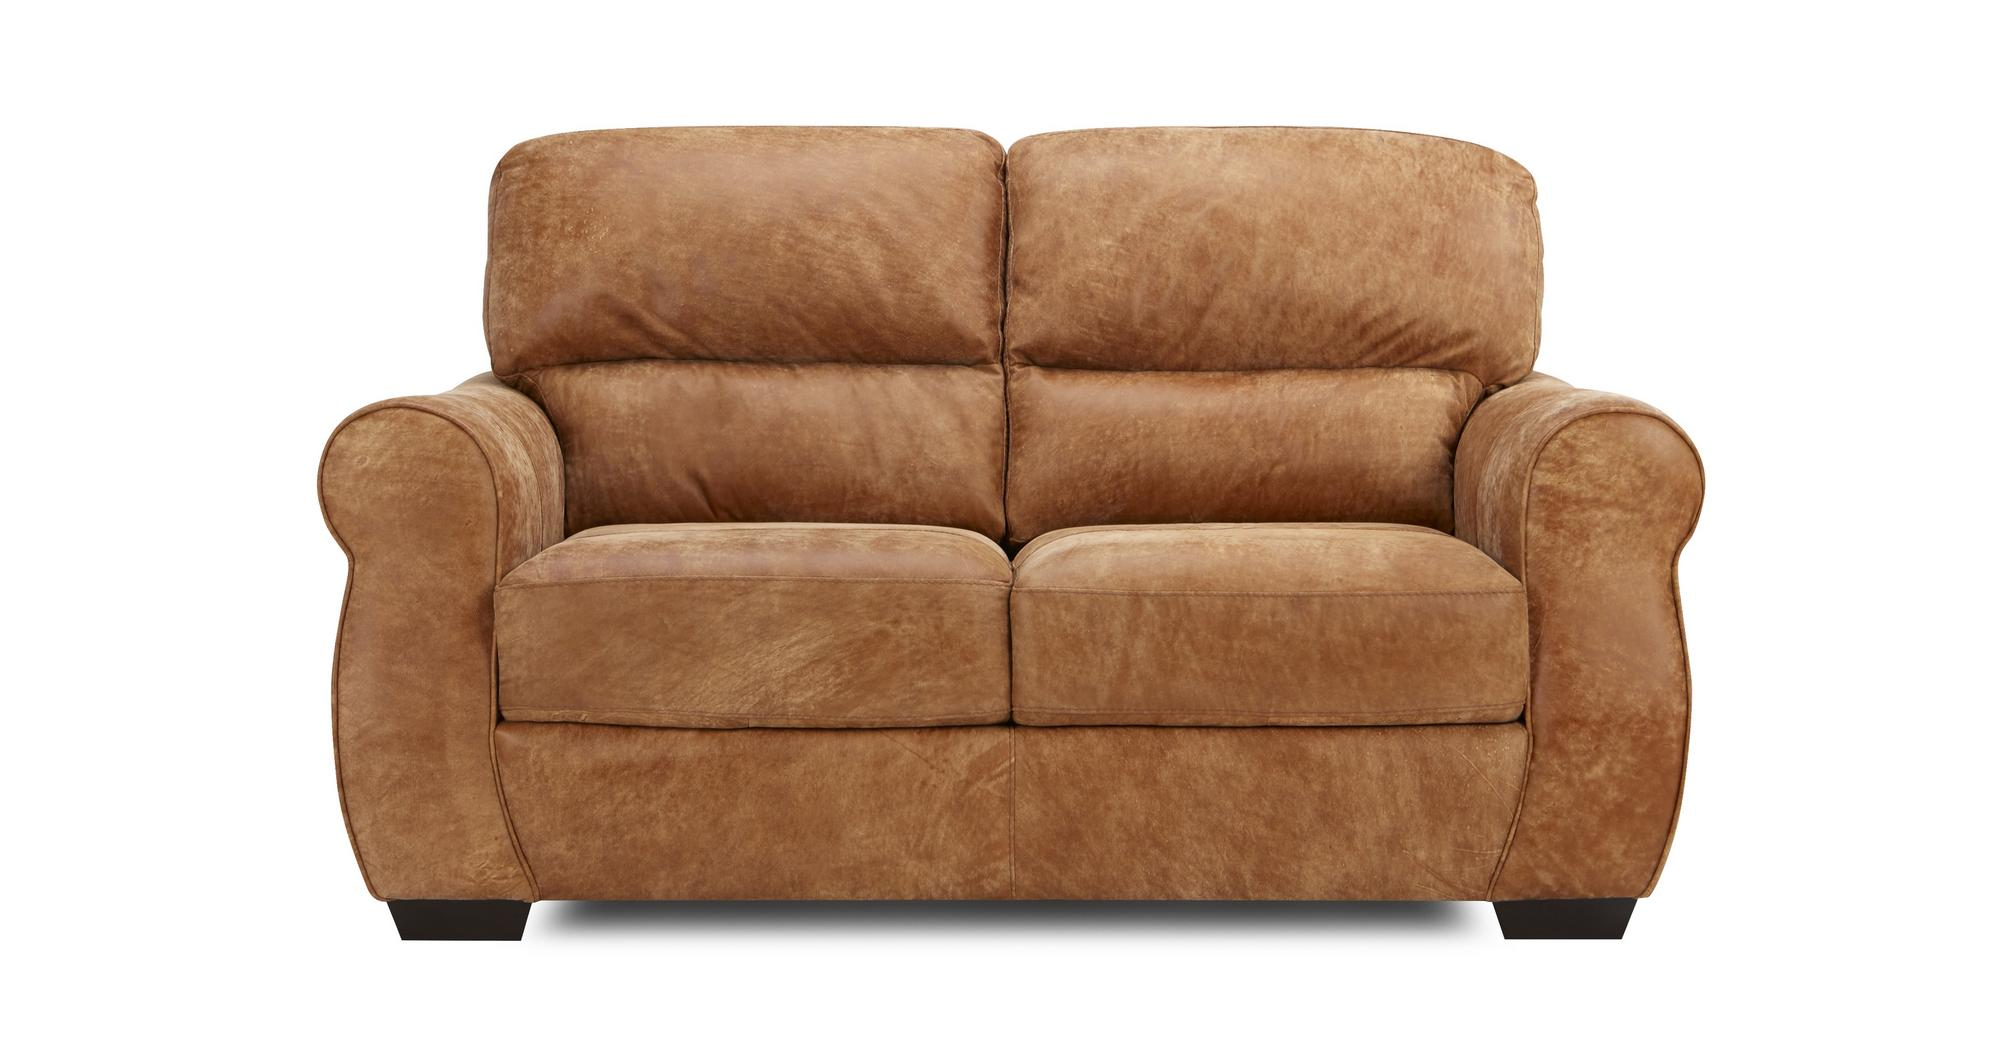 Dfs Holton Ranch Brown Leather 3 Seater 2 Seater Armchair Footstool Ebay